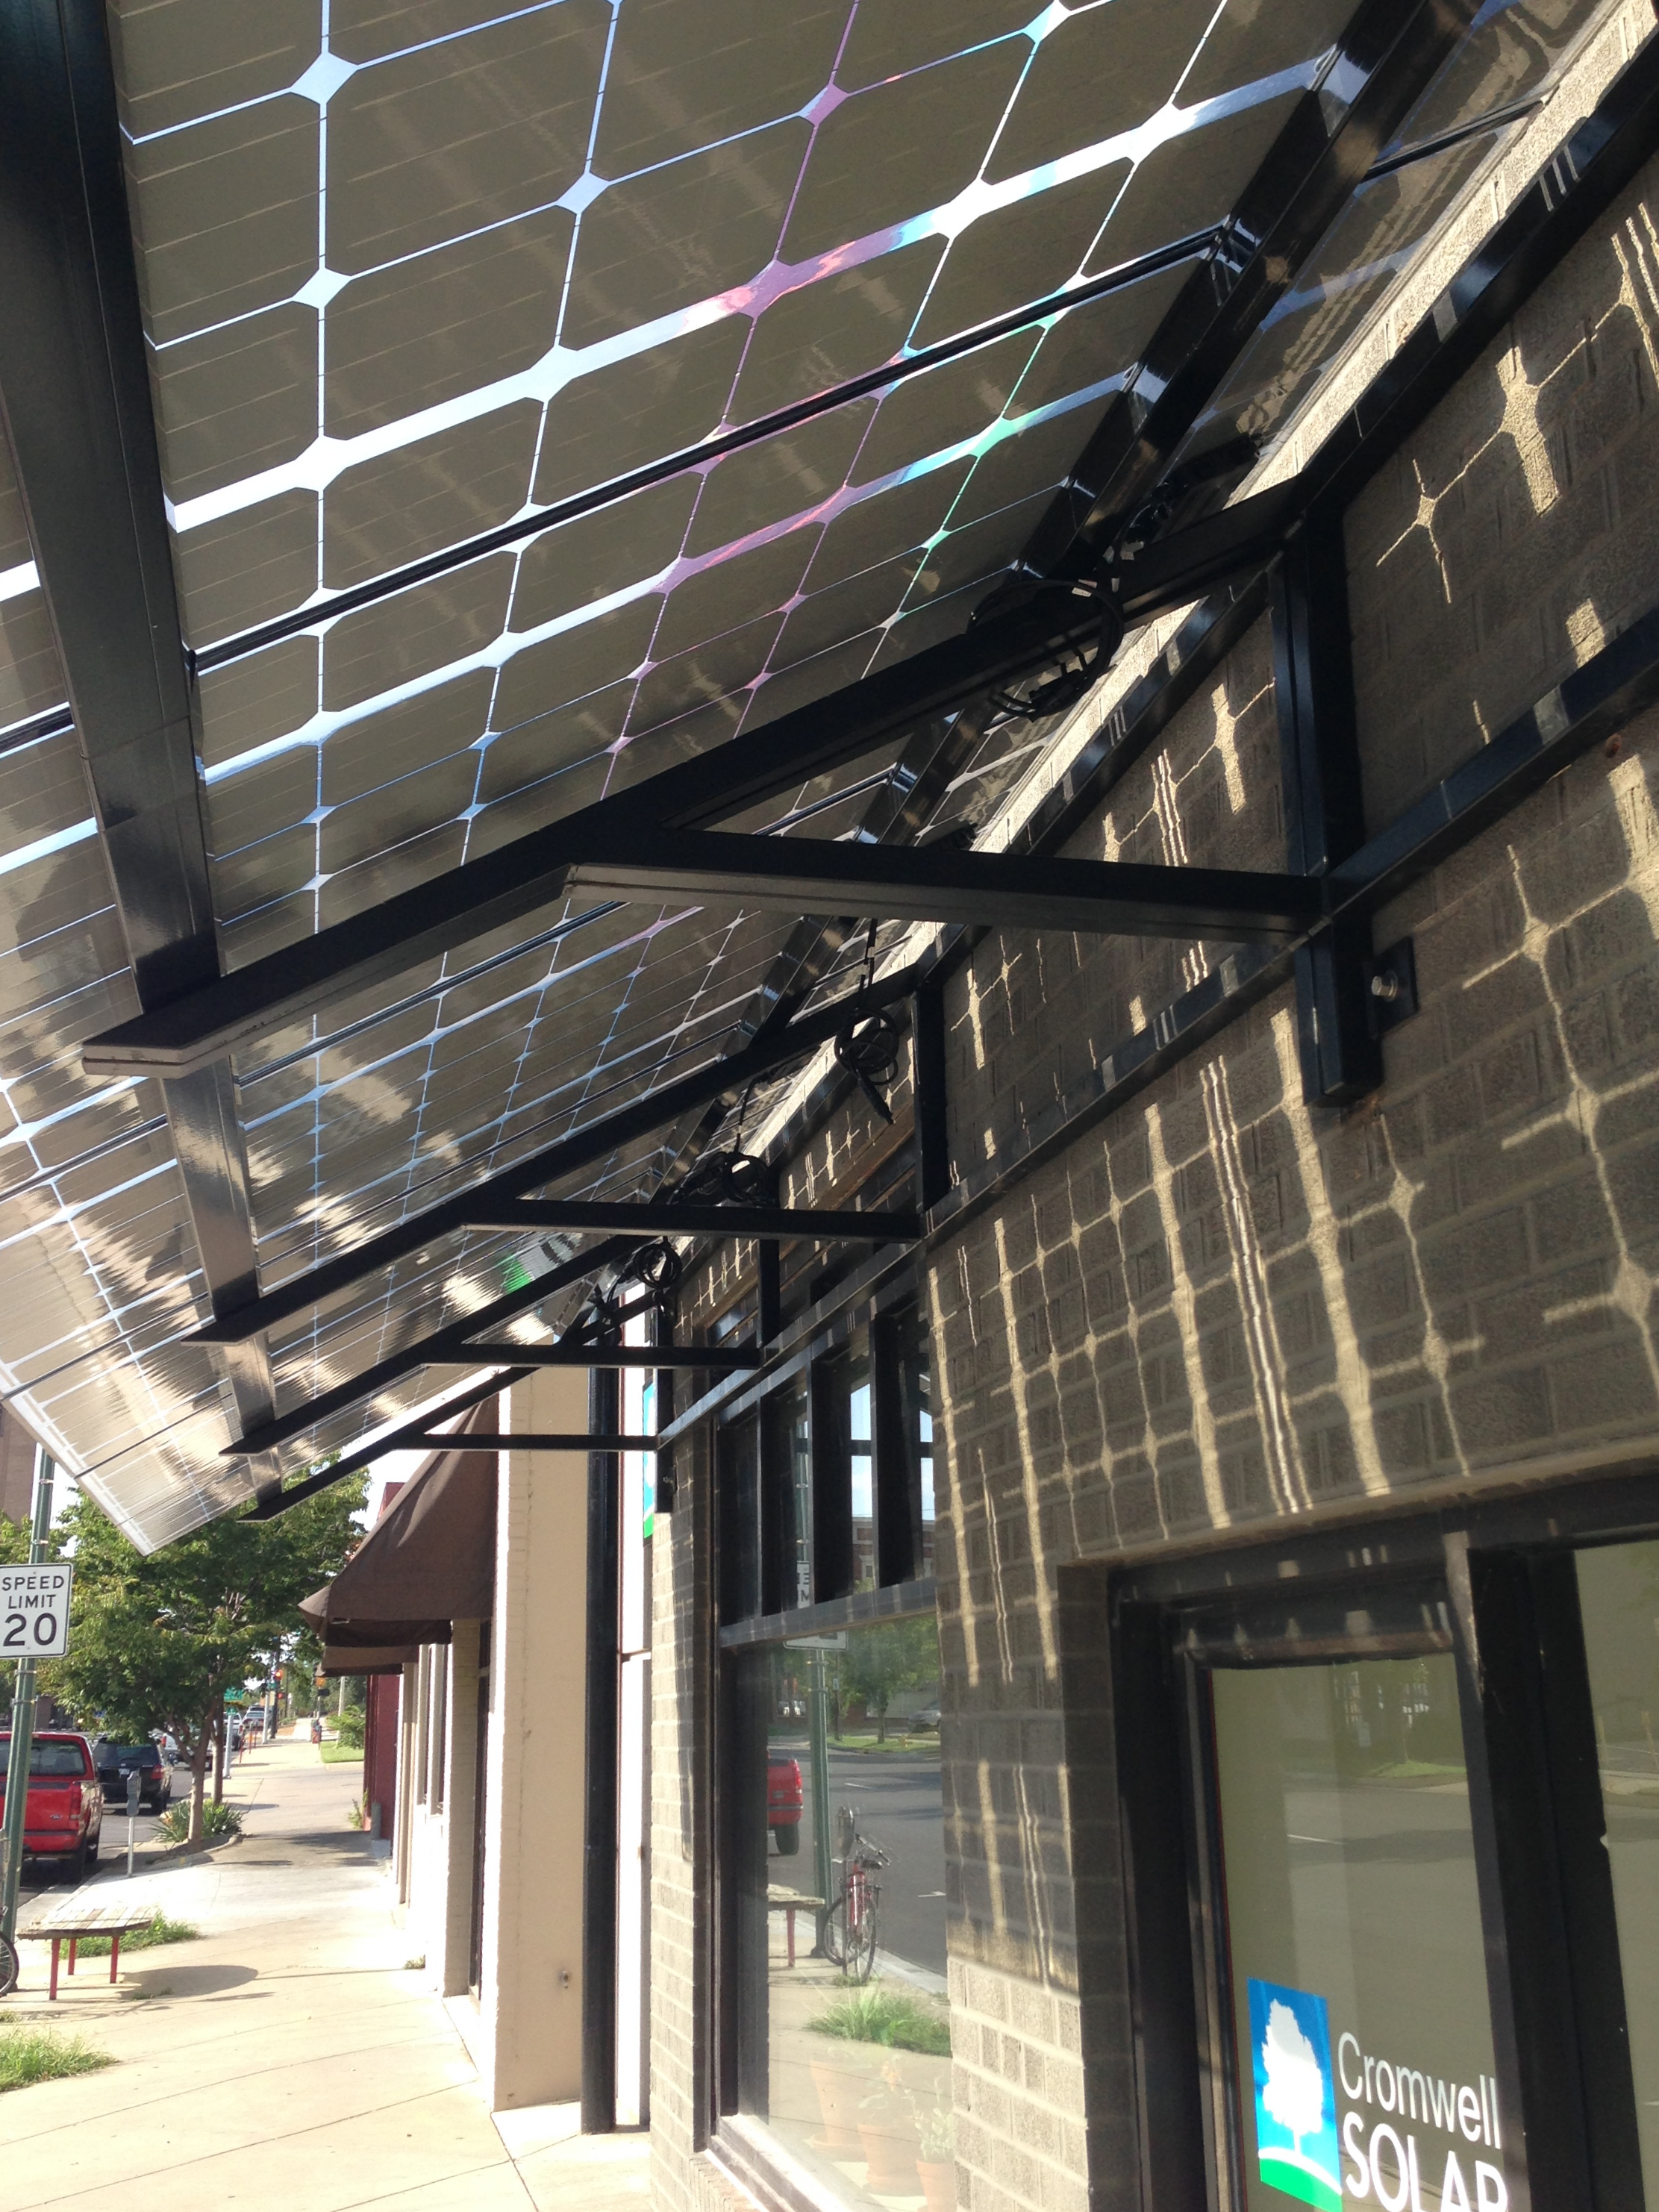 Bi-facial, frameless solar panels are used as an architectural feature on a custom solar awning for our office.